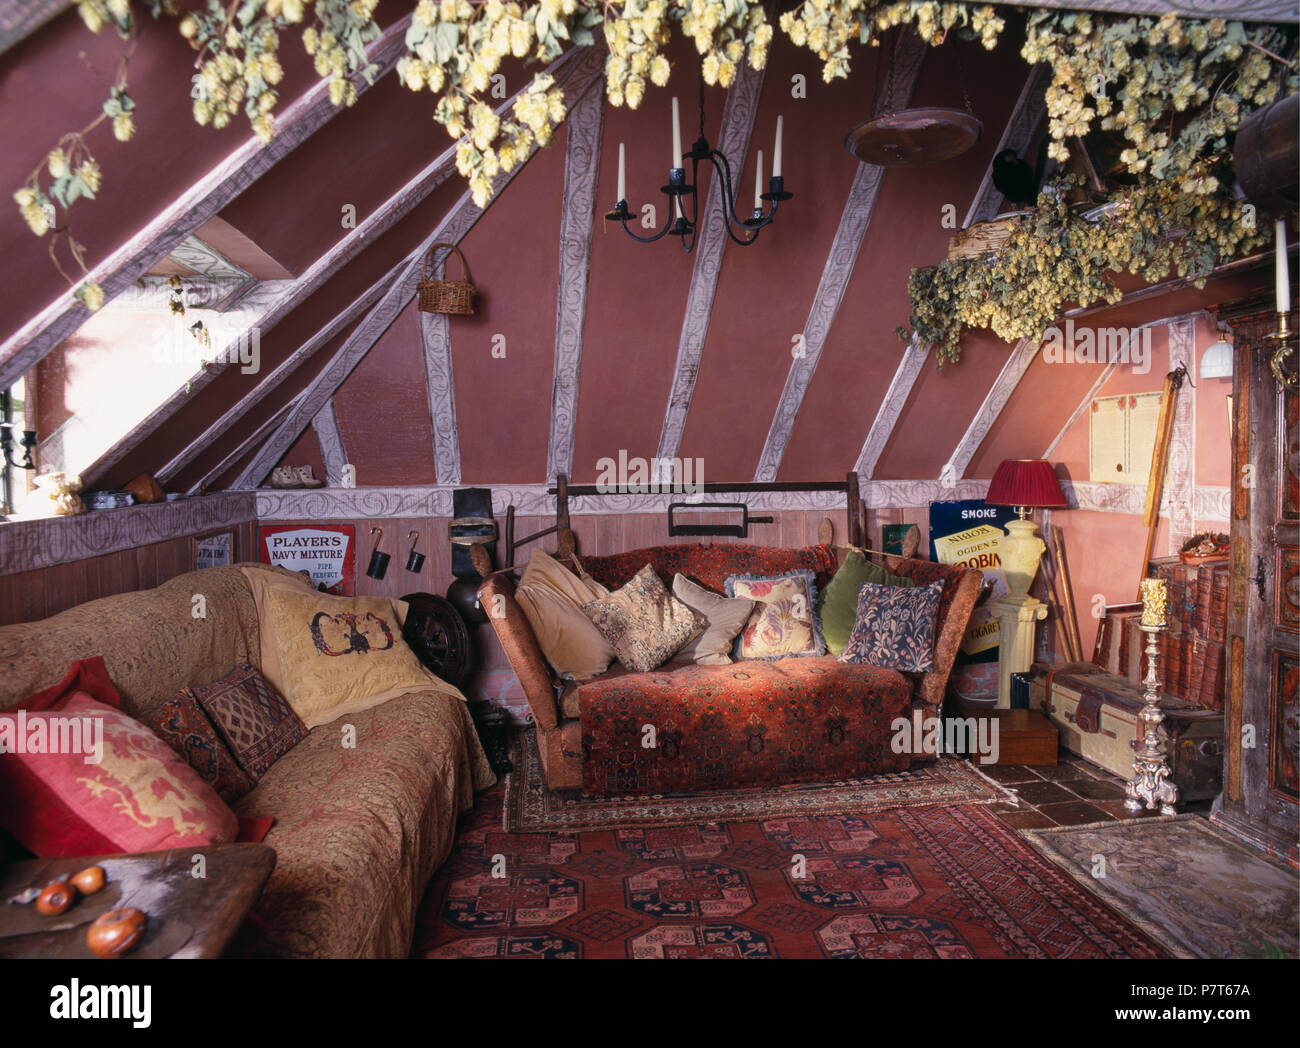 Dried hop bine on ceiling of old fashioned pink cottage living room with cushions and throws on sofas - Stock Image